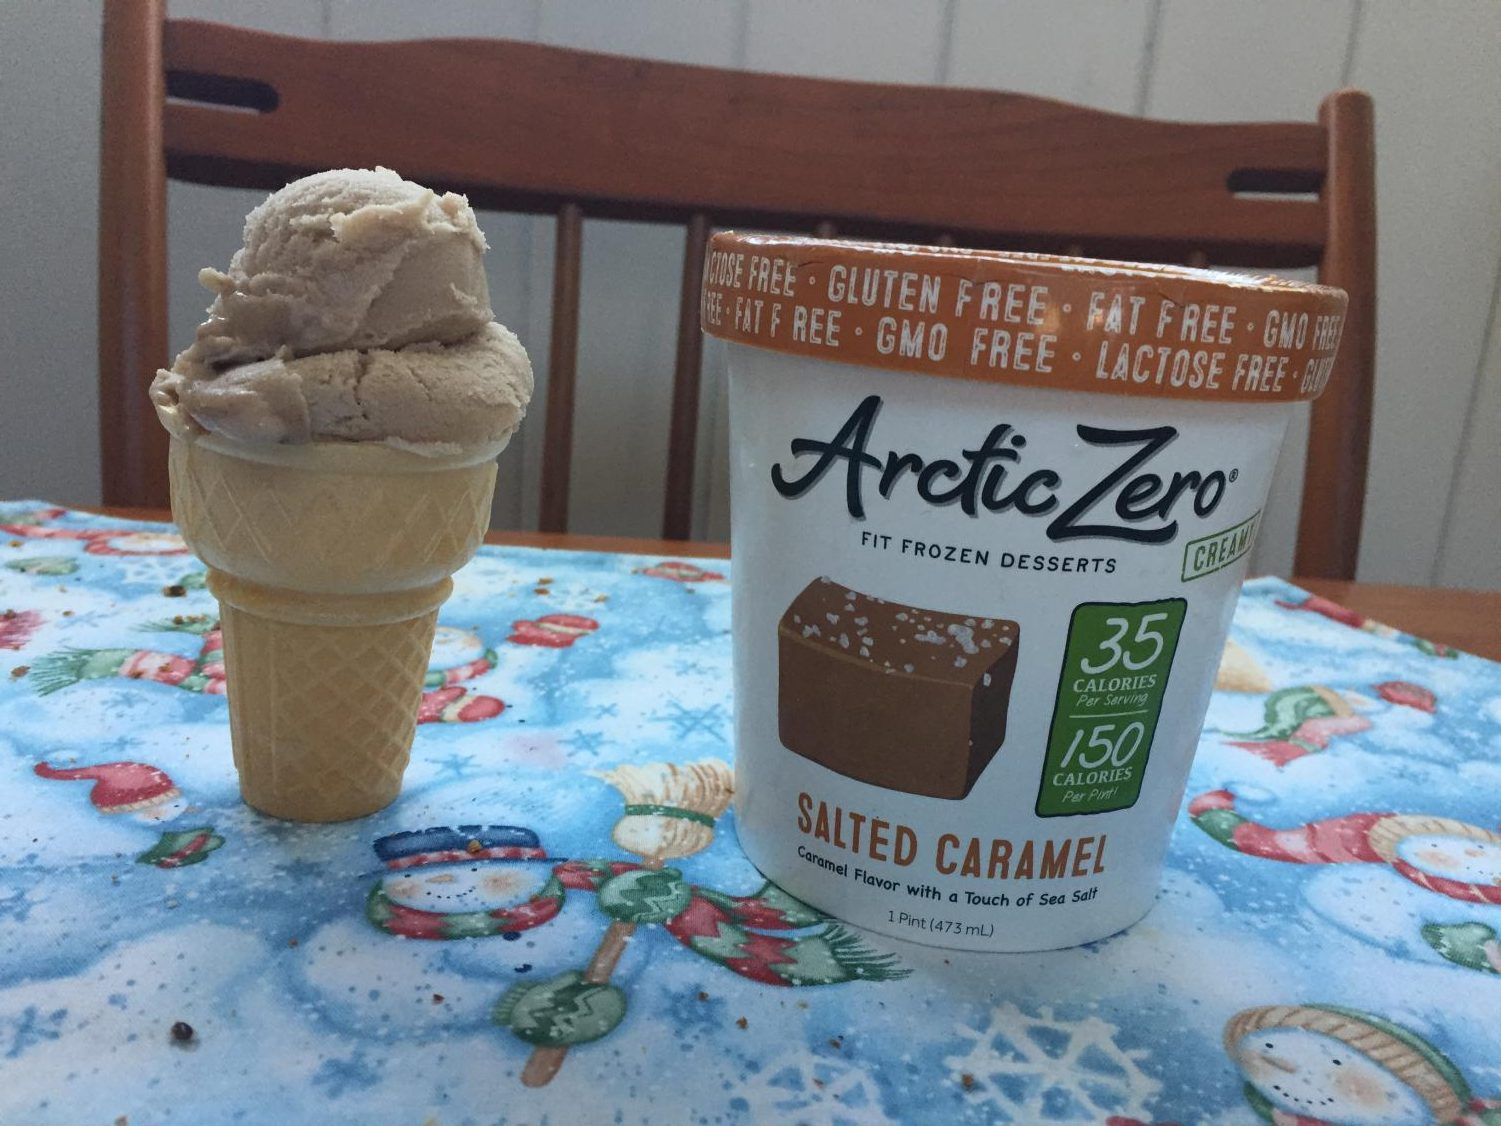 This+ice+cream+took+all+the+fun+out+of+an+ice+cream.+No+dairy%2C+no+fat%2C+and+even+no+lactose%21+NOT+impressed.